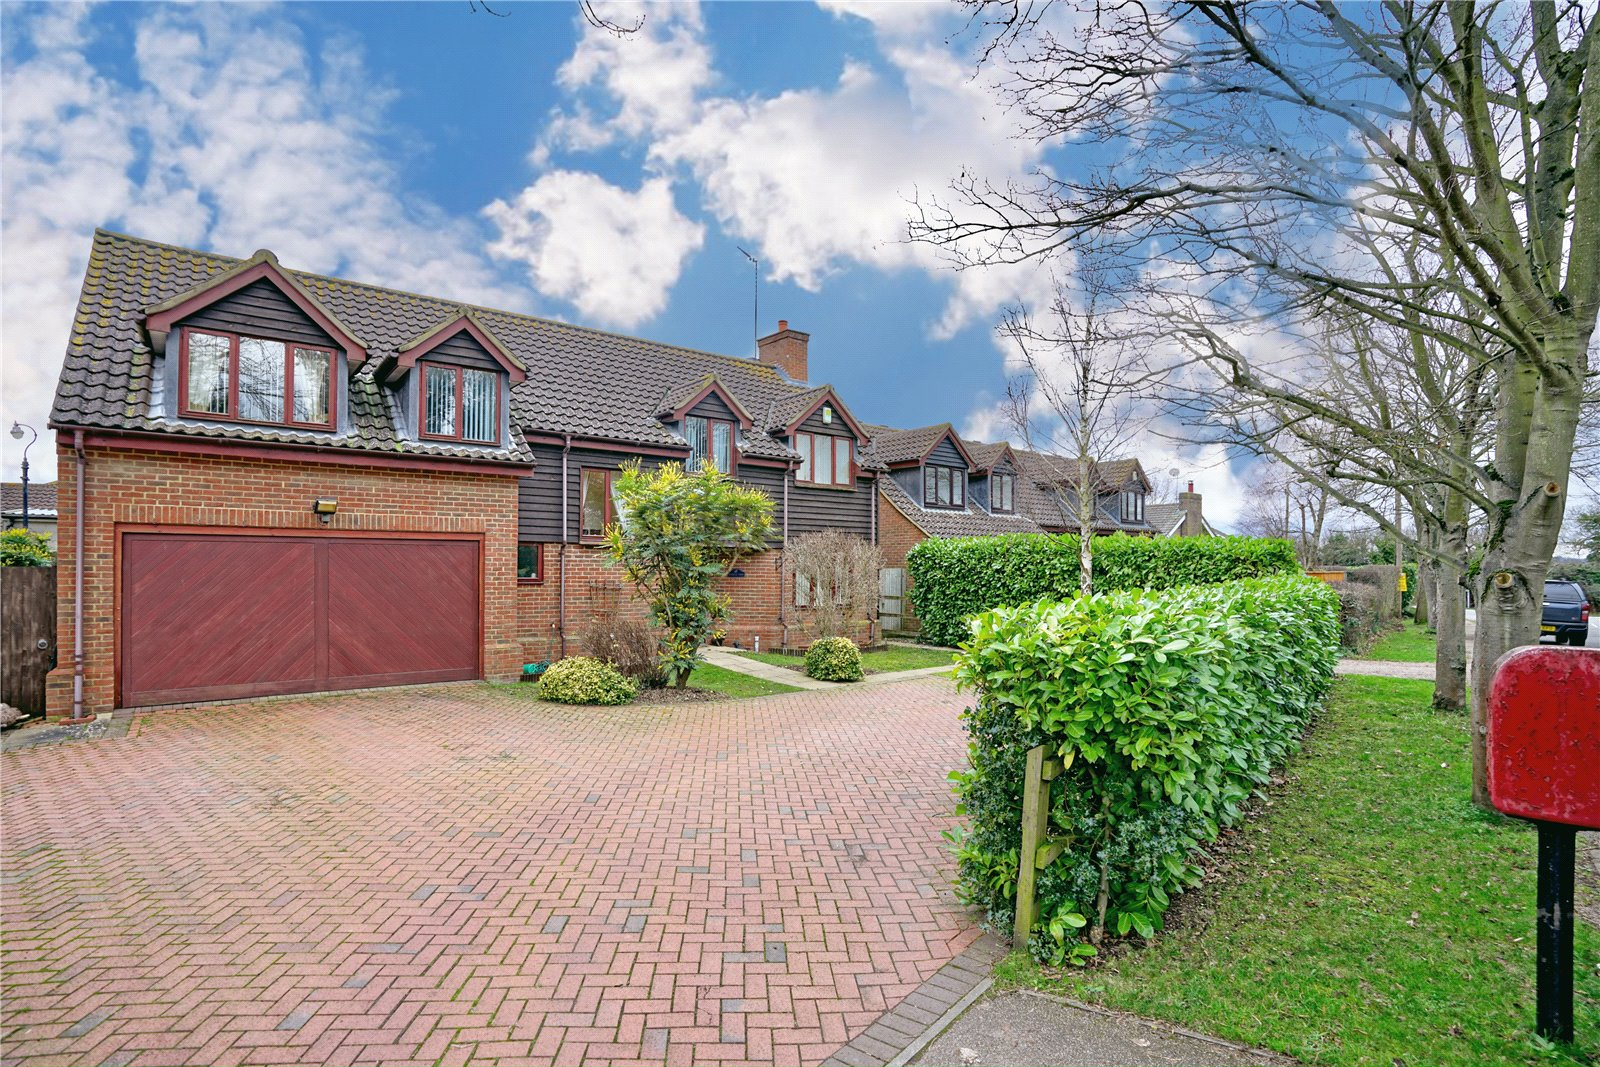 4 bed house for sale in Spring Hill, Little Staughton, MK44